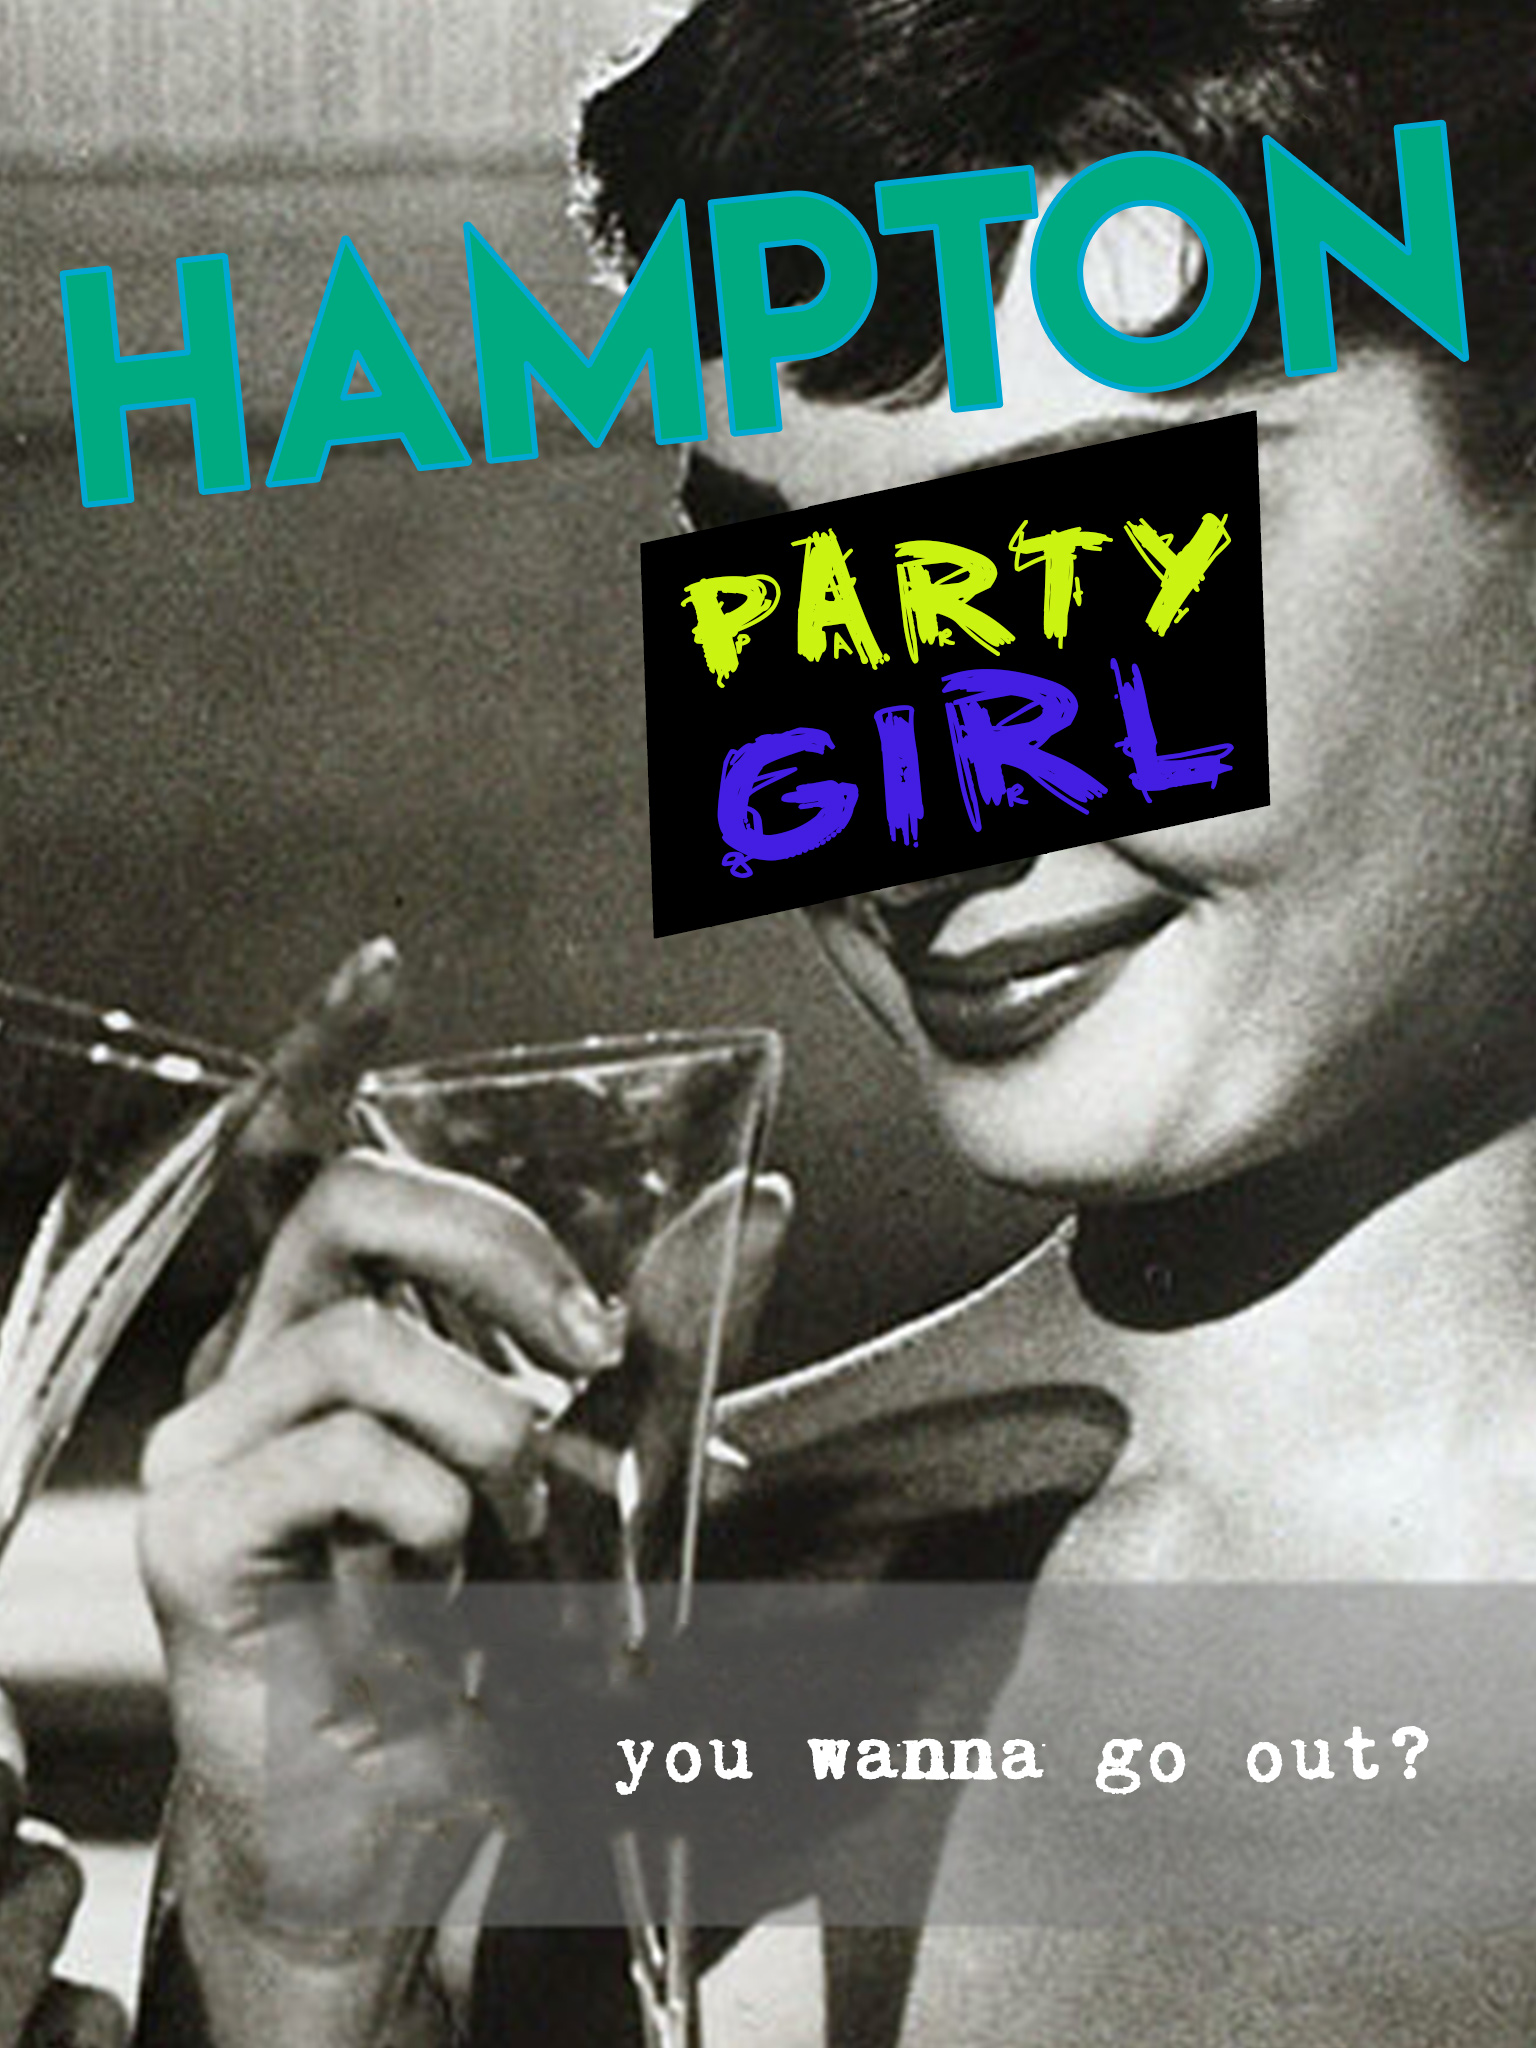 hampton party girl.jpg